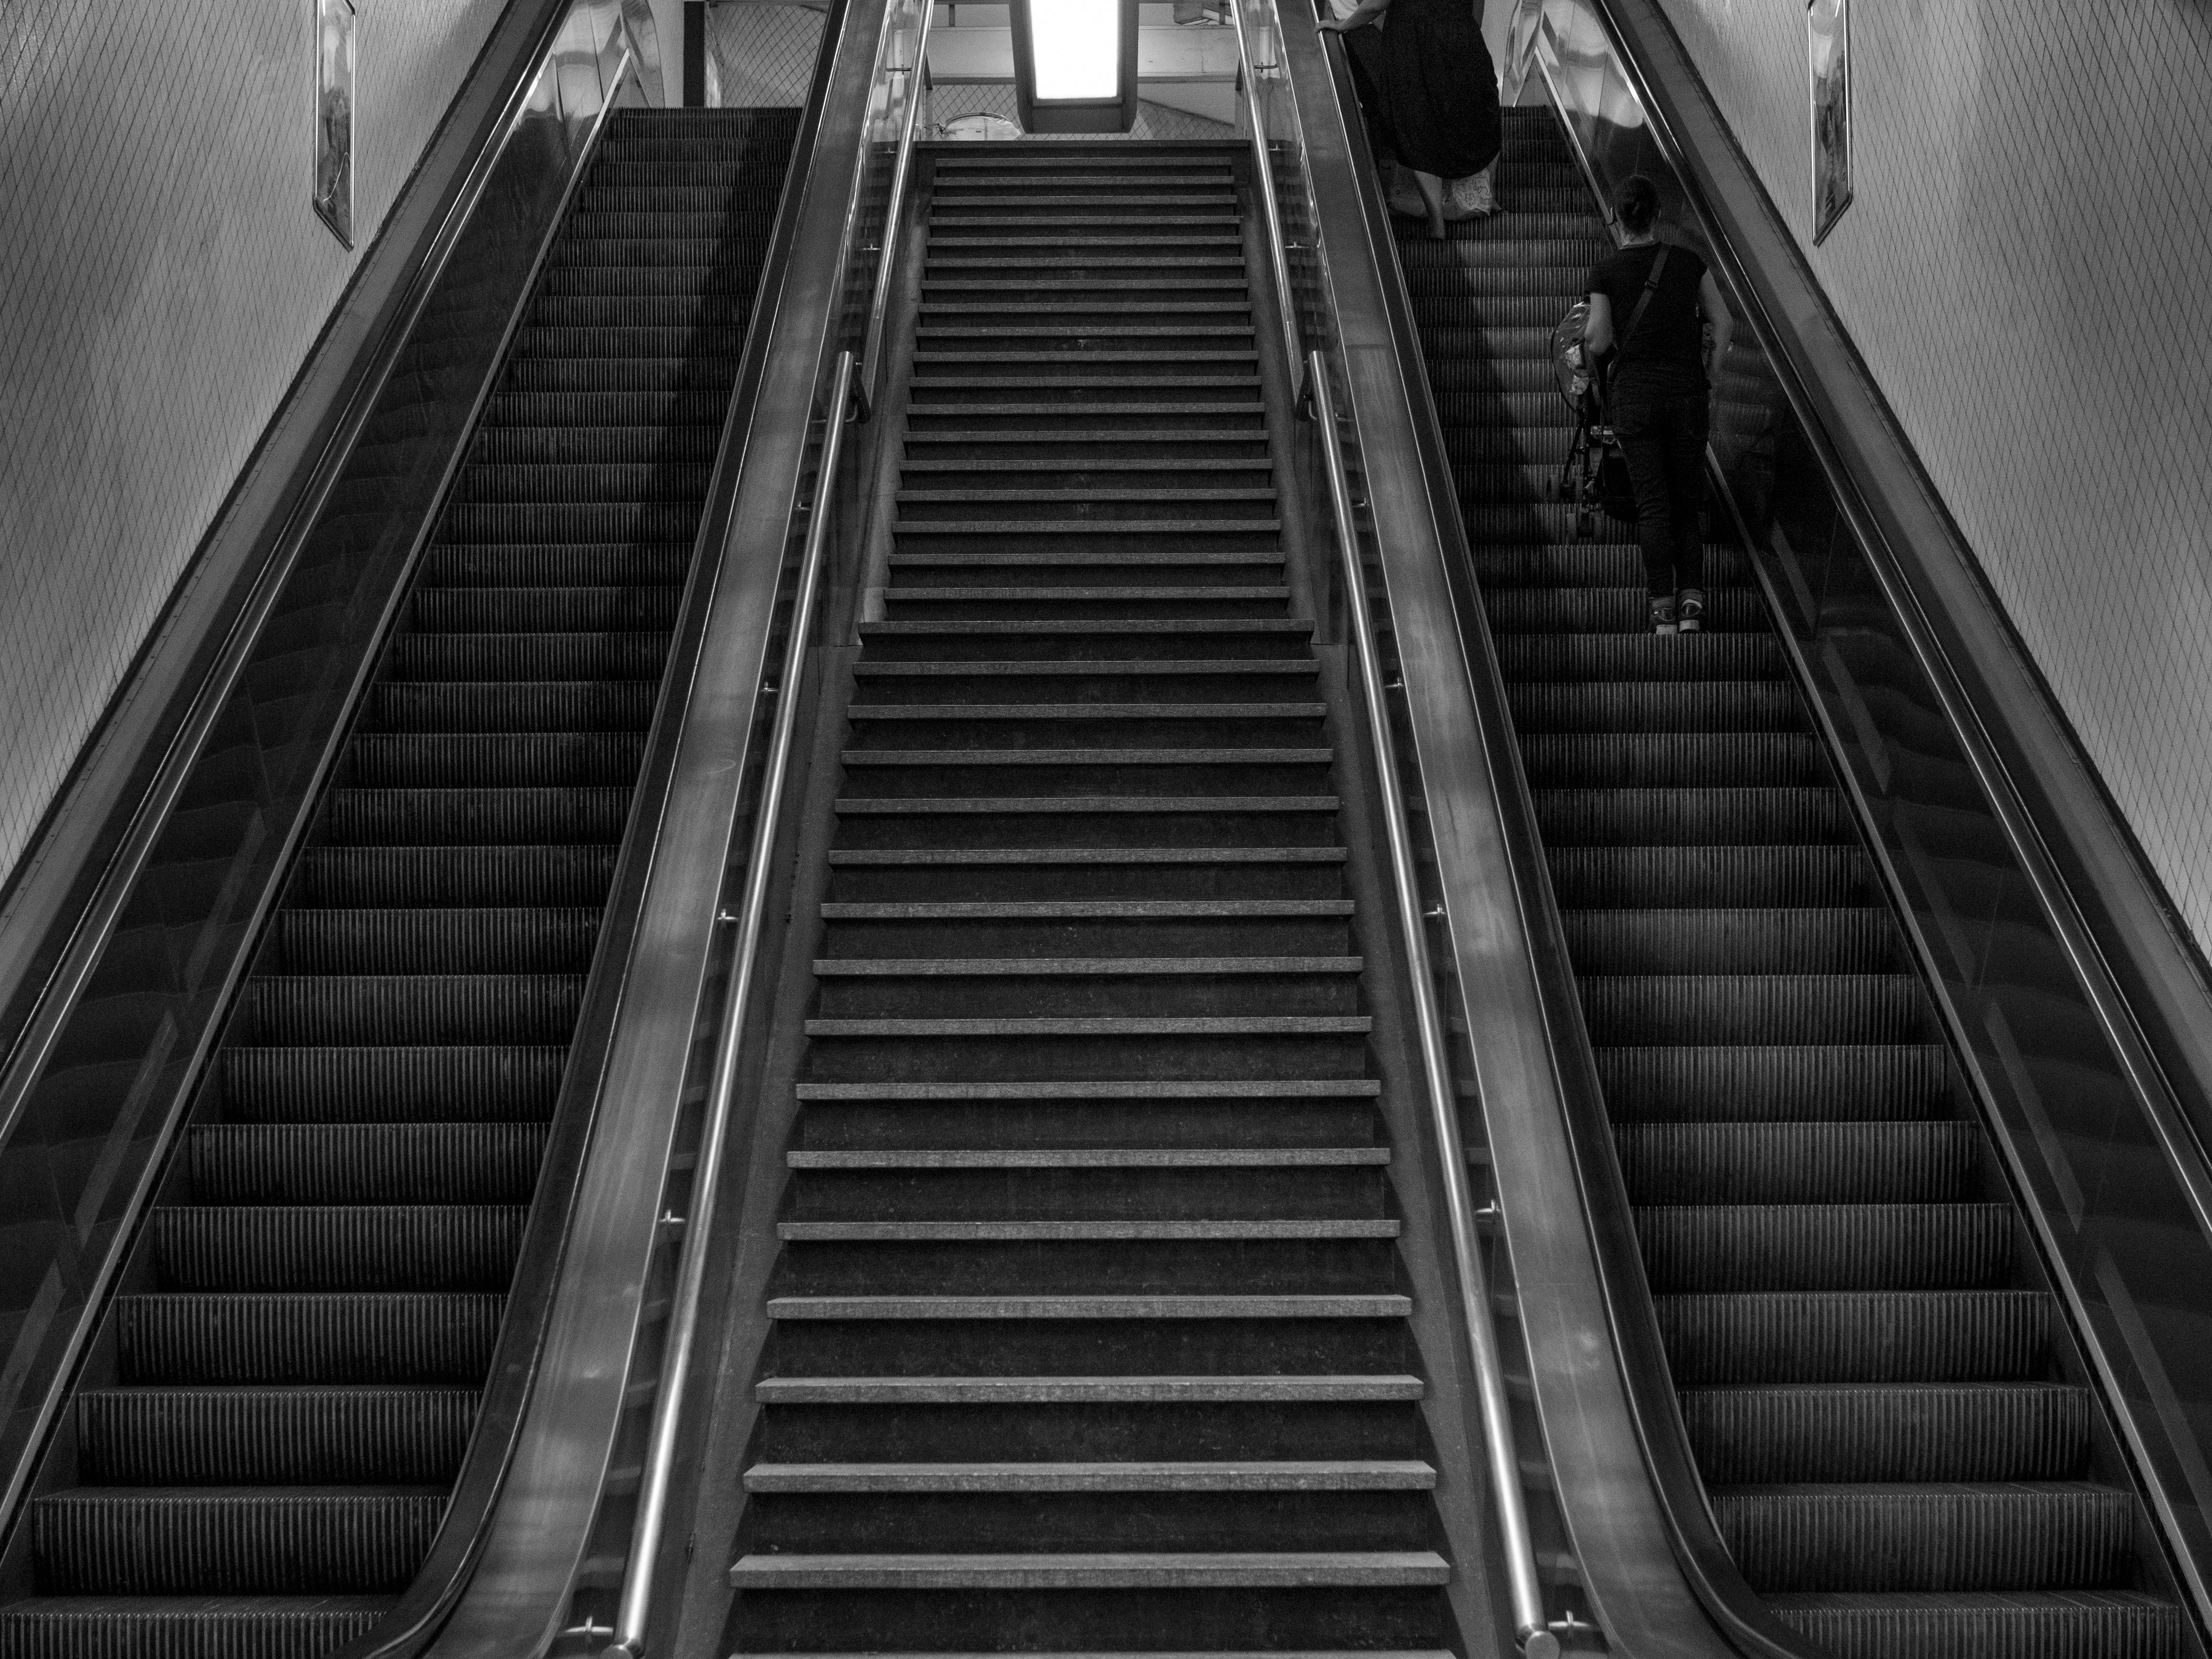 Free stock photo of black and white, escalator, going up, stairs